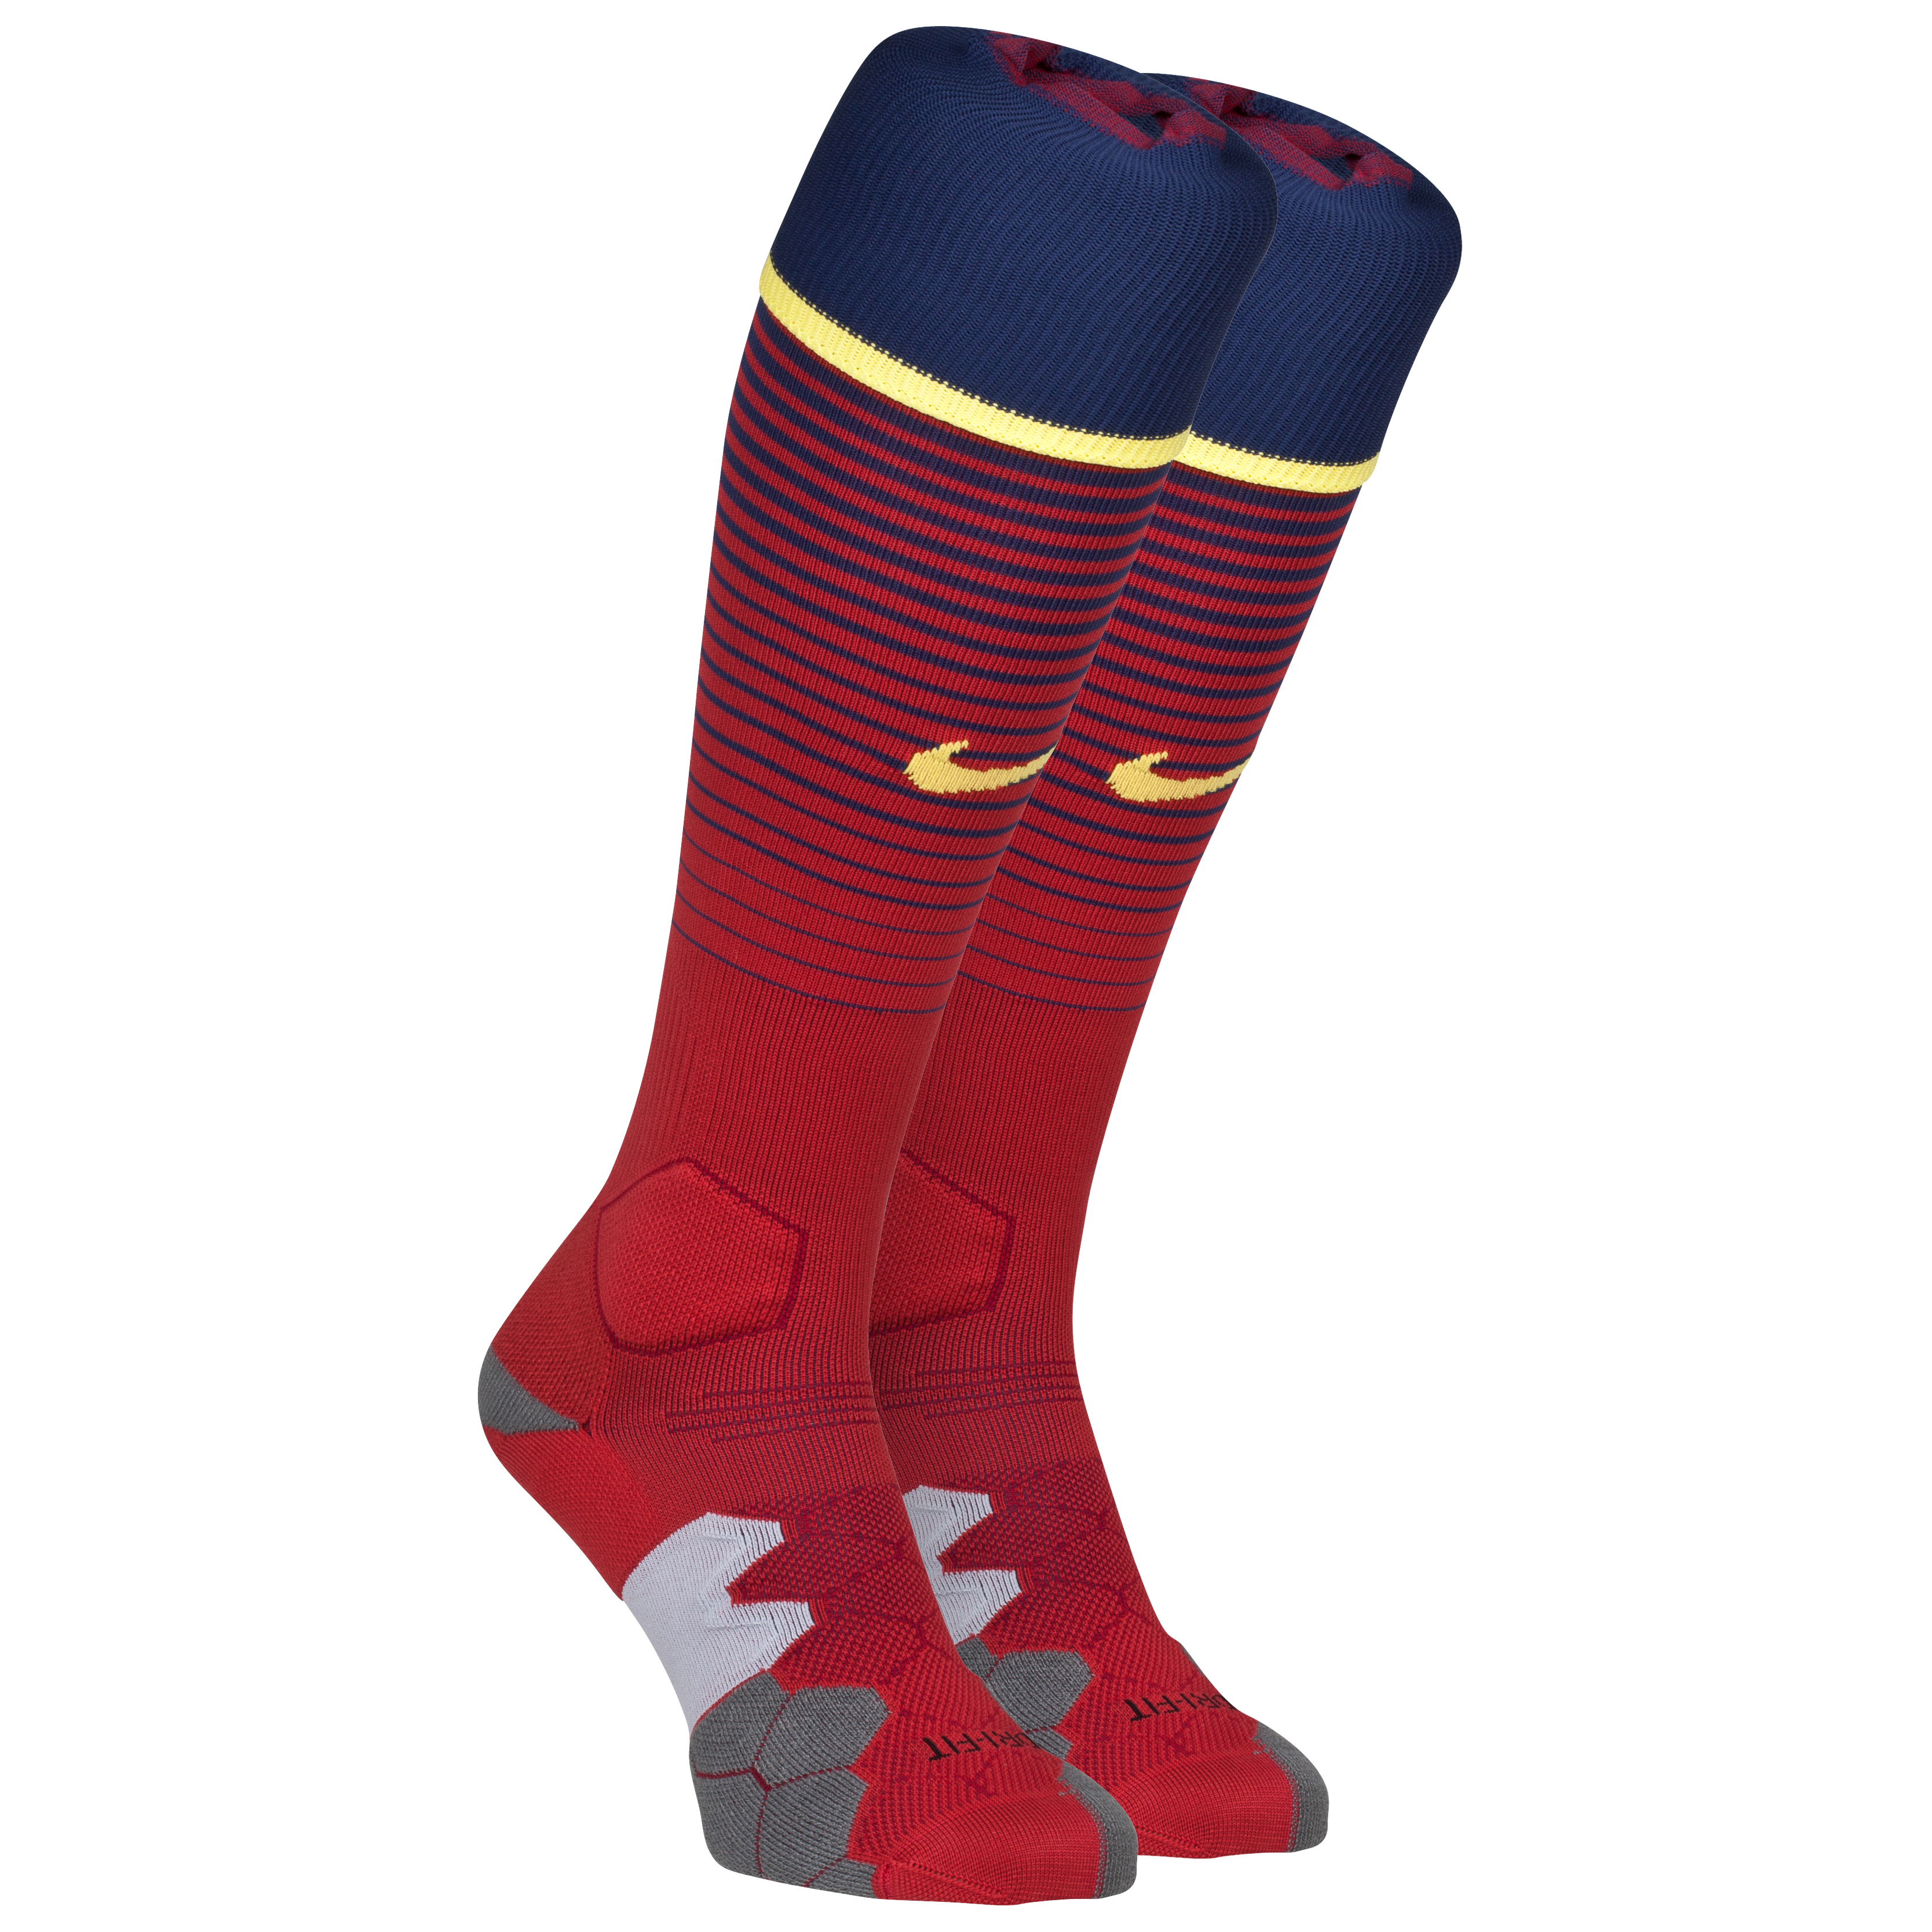 Barcelona Home Socks 2013/14